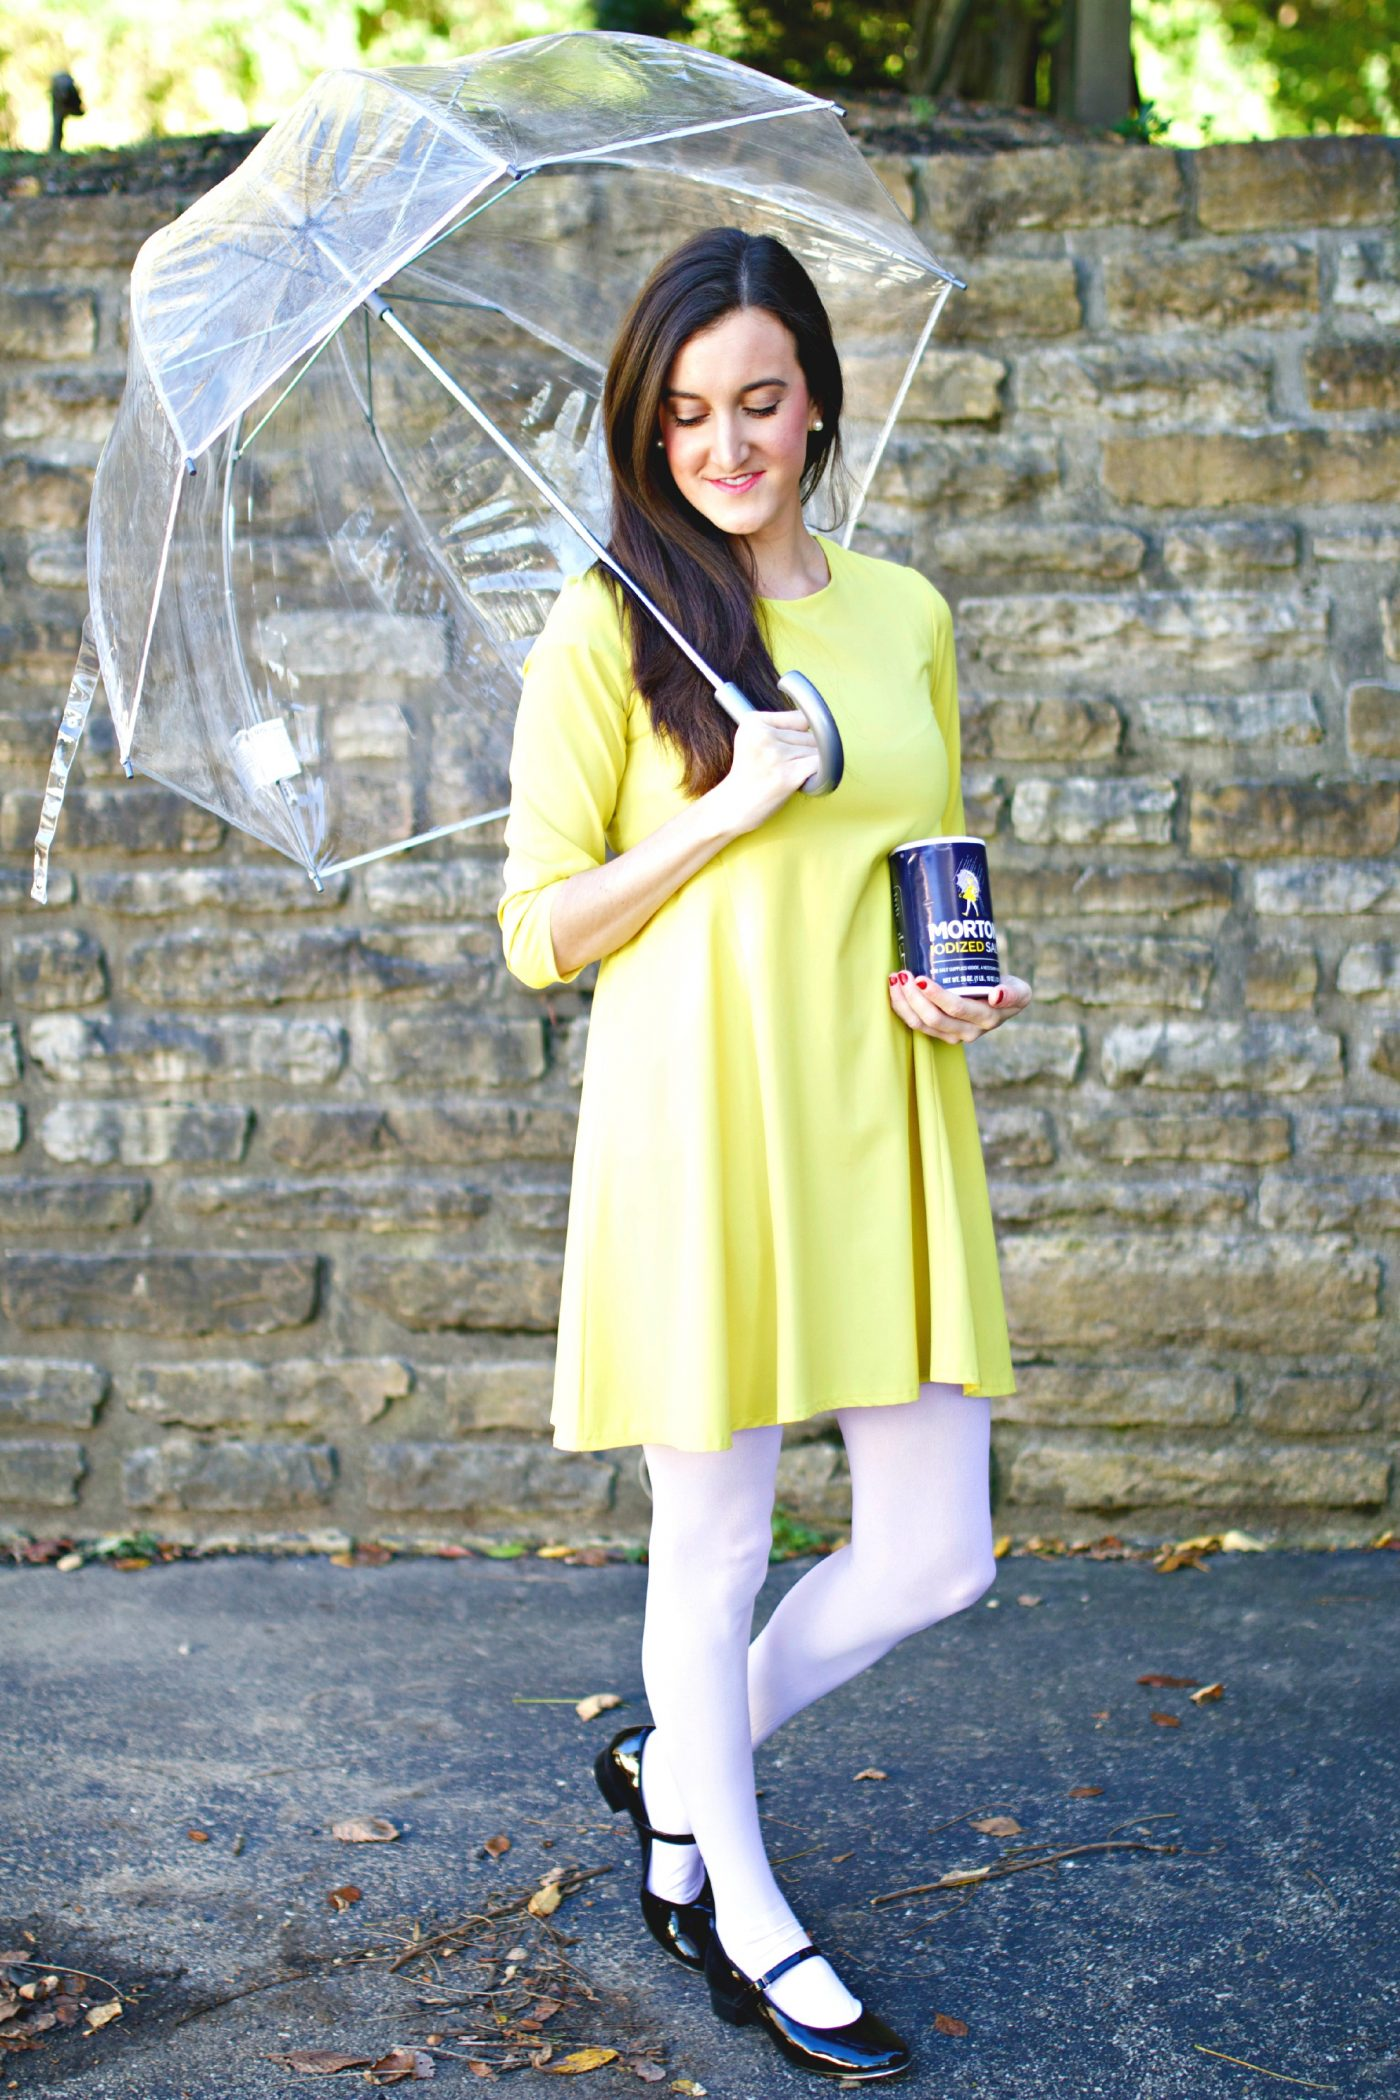 Female Halloween Costume Easy.Halloween Costume Idea Morton Salt Girl Baubles To Bubbles